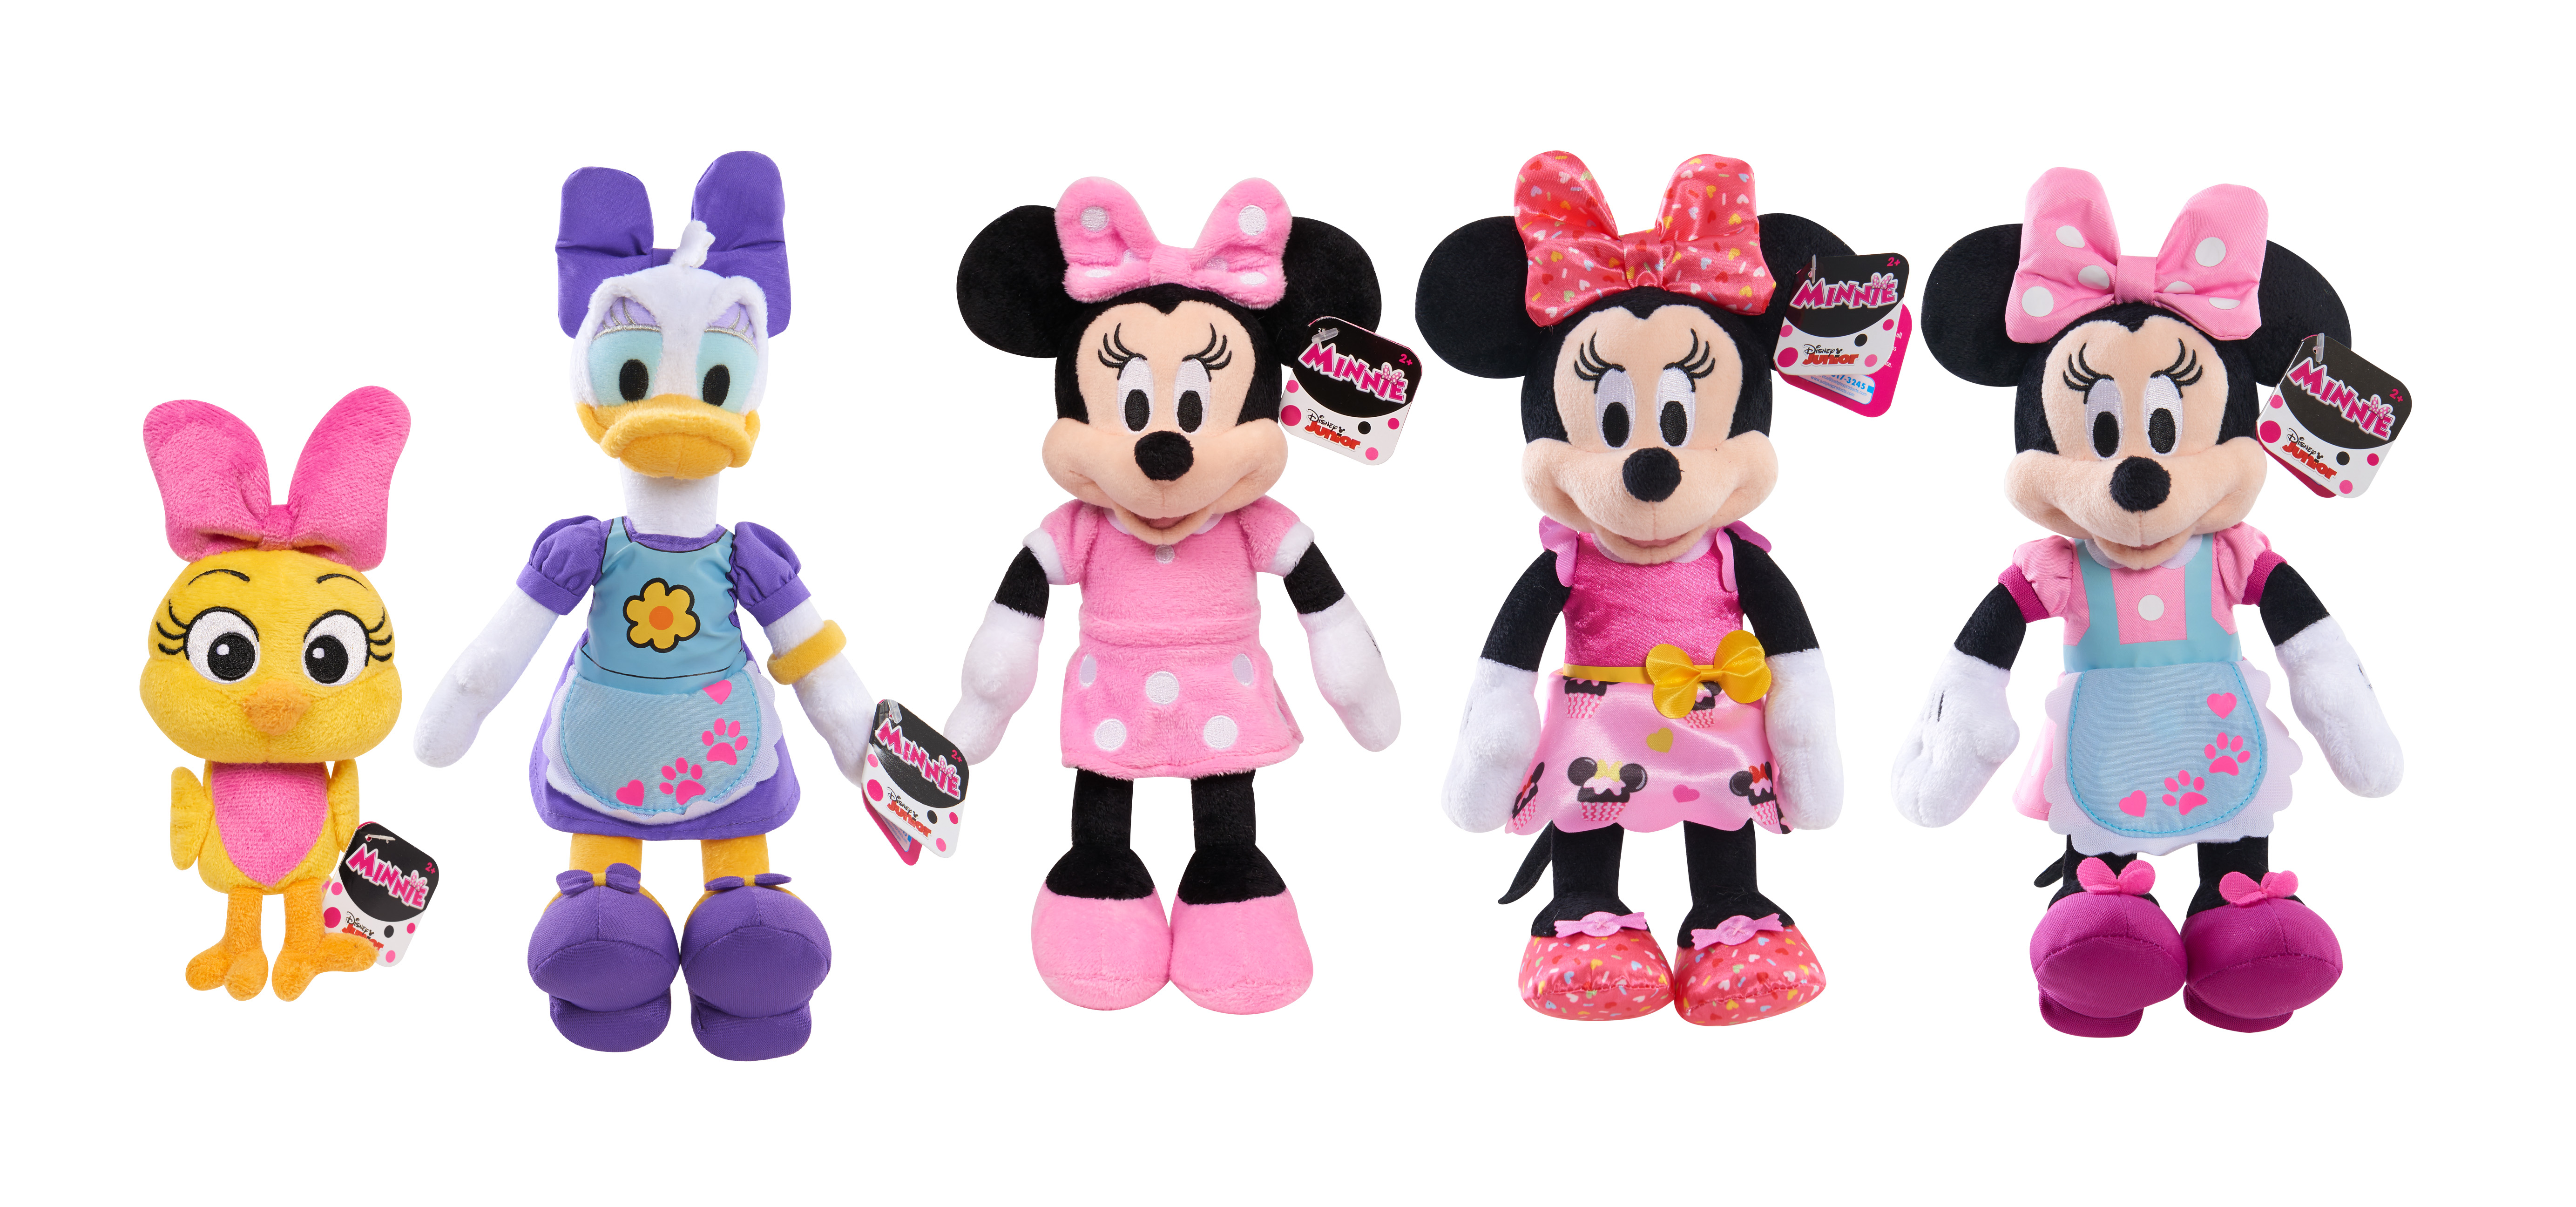 Disney Minnie Mouse Beanbag Plush Assortment, Styles May Vary by Just Play